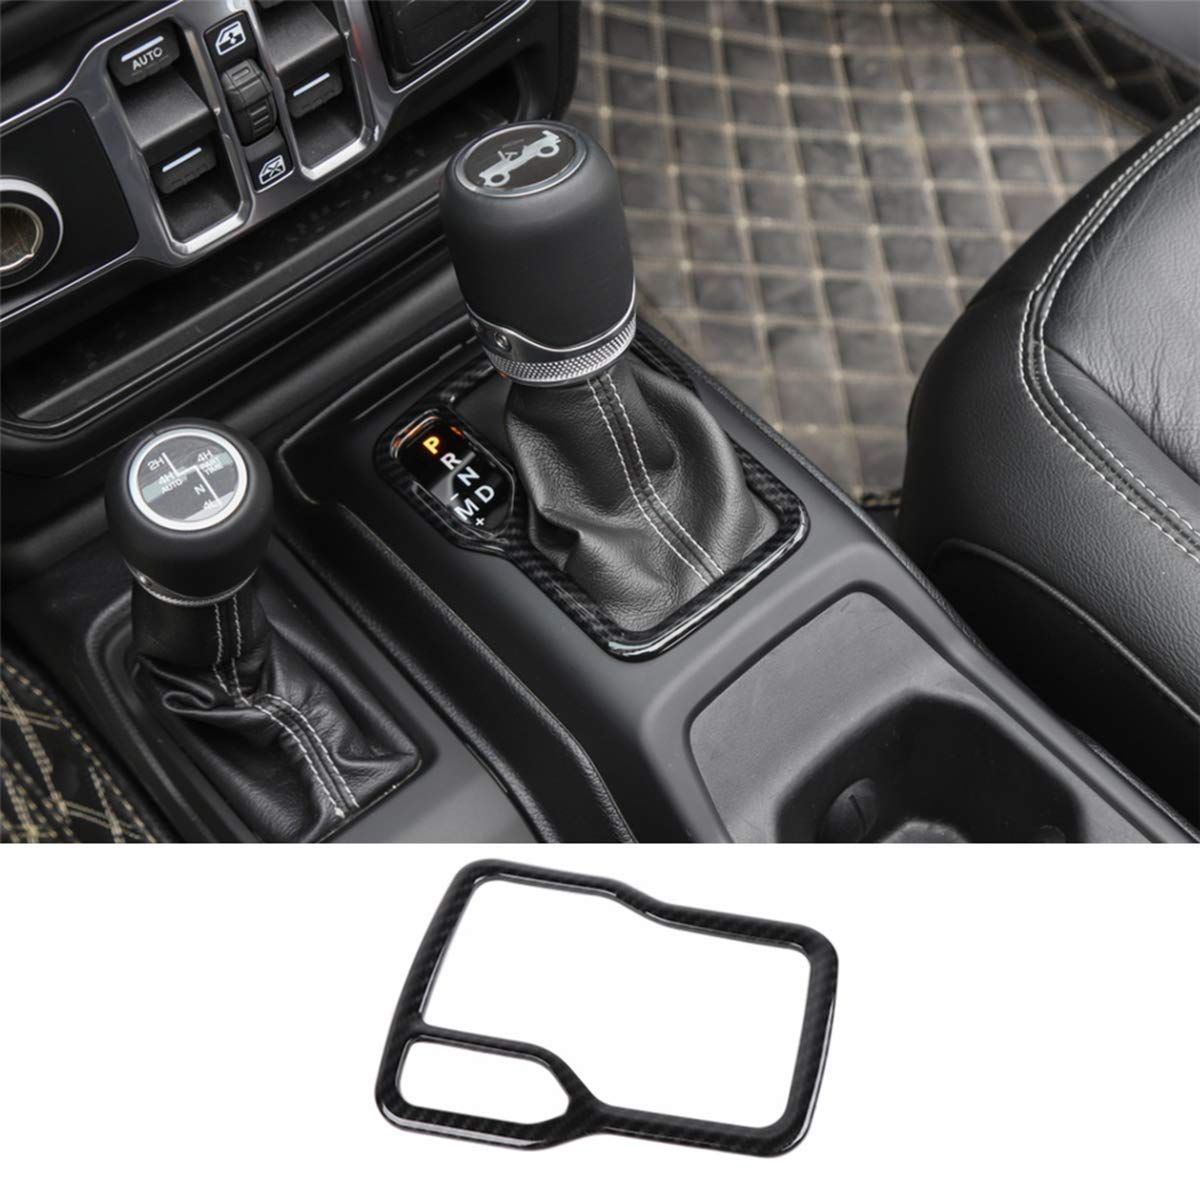 Cup Holder Trim Gear Shift Cover For Jl Jt In 2020 Cup Holder Wrangler Accessories Jeep Wrangler Accessories